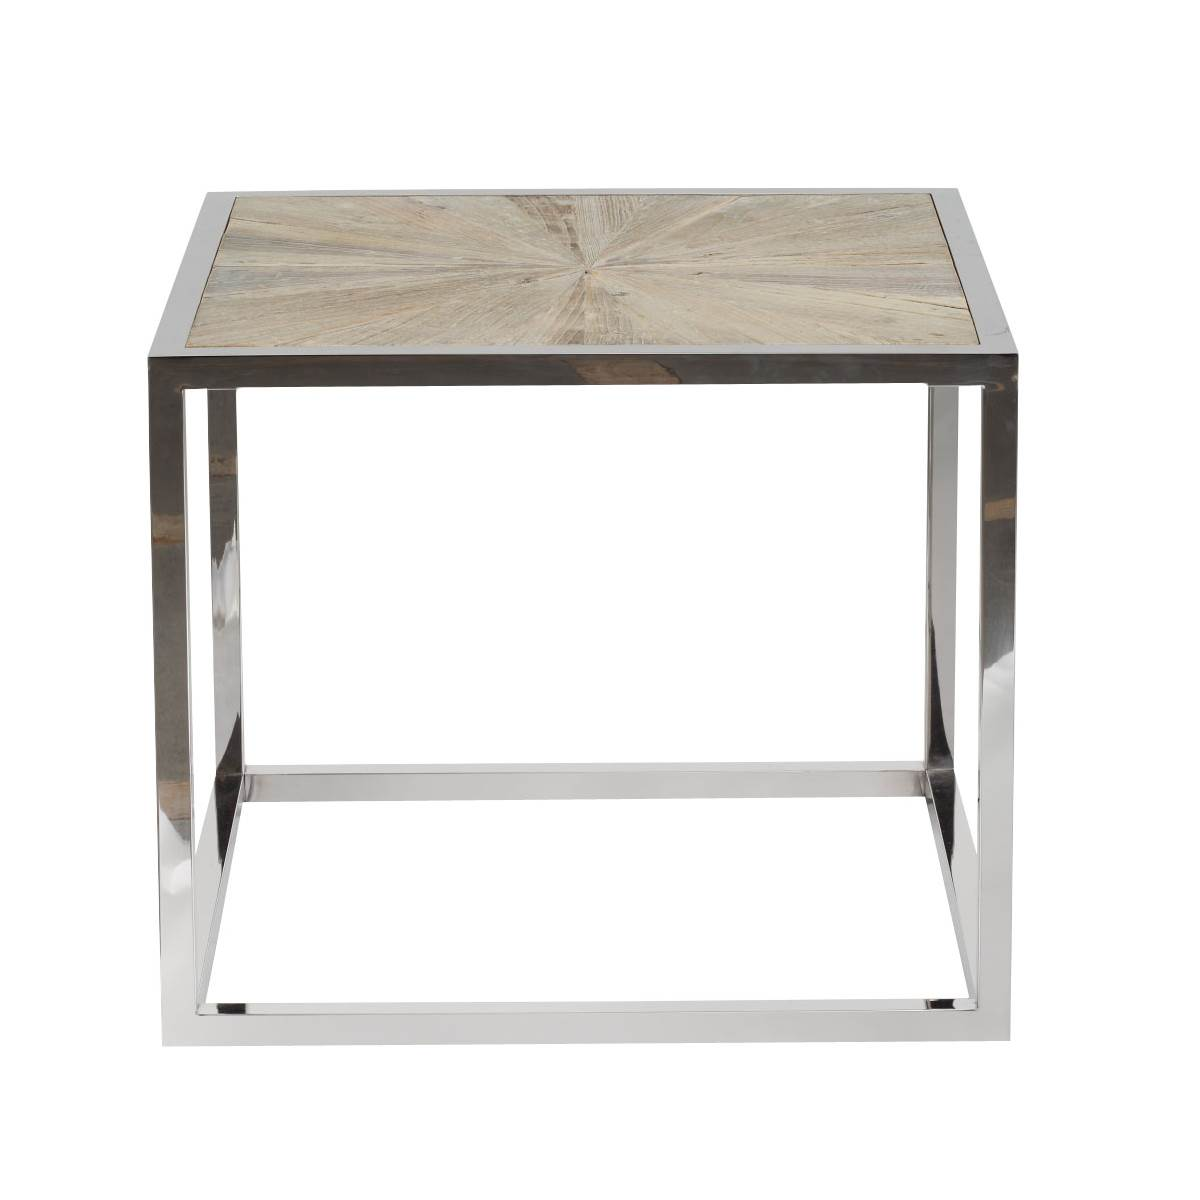 Parquet End Table - Smoke Gray - 1